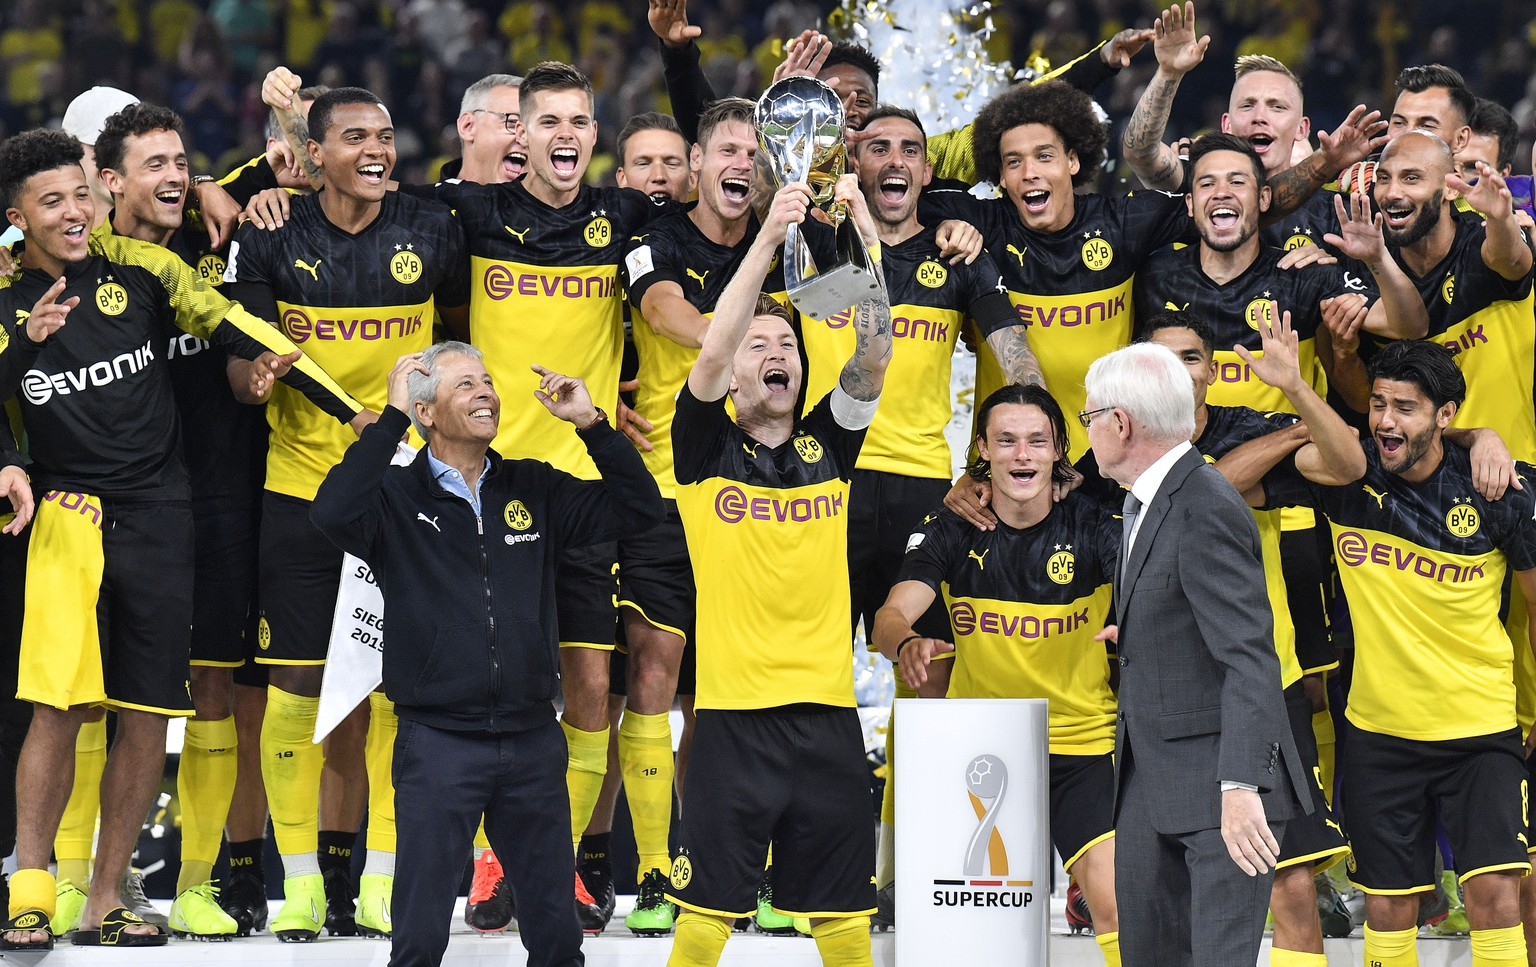 Dortmund's Marco Reus lifts up the trophy beside head coach Lucien Favre, left, and Dortmund's President Reinhard Rauball, right, as he celebrates with teammates after winning the German Super Cup final match between Borussia Dortmund and Bayern Munich in Dortmund, Germany, Saturday, Aug. 3, 2019. (AP Photo/Martin Meissner)